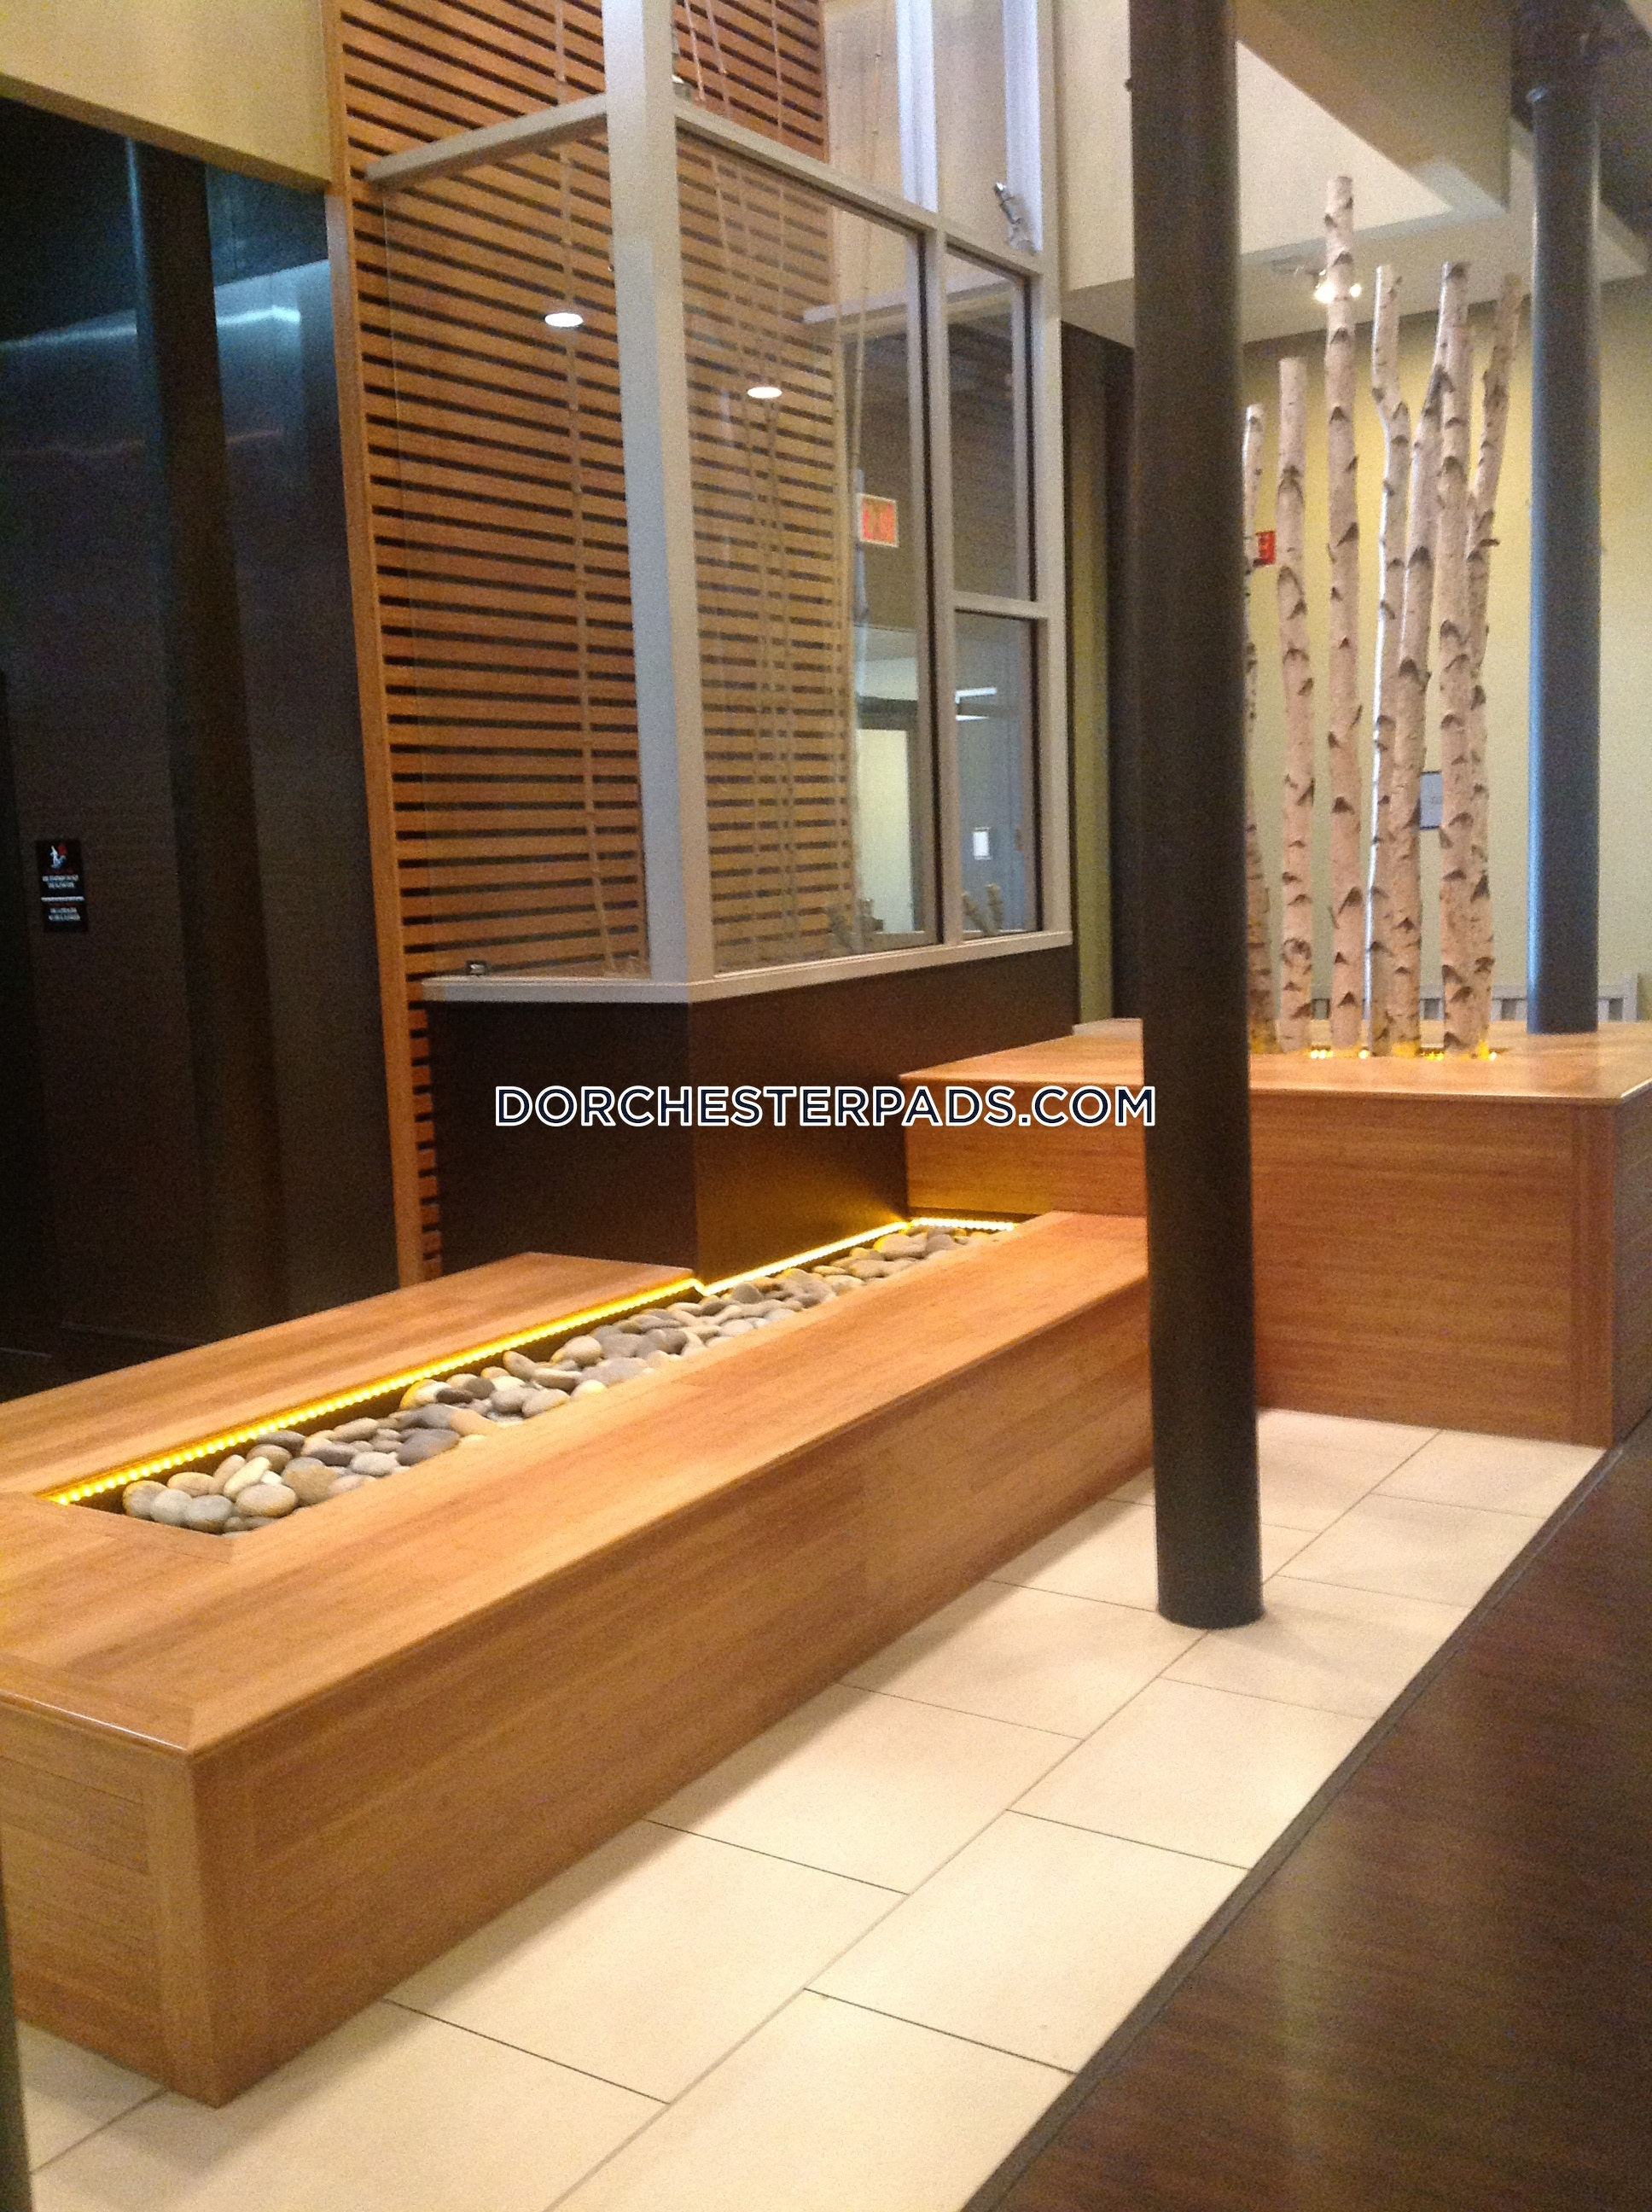 1 Bed Apartment for $2,300 /mo in BOSTON - DORCHESTER - LOWER MILLS ...